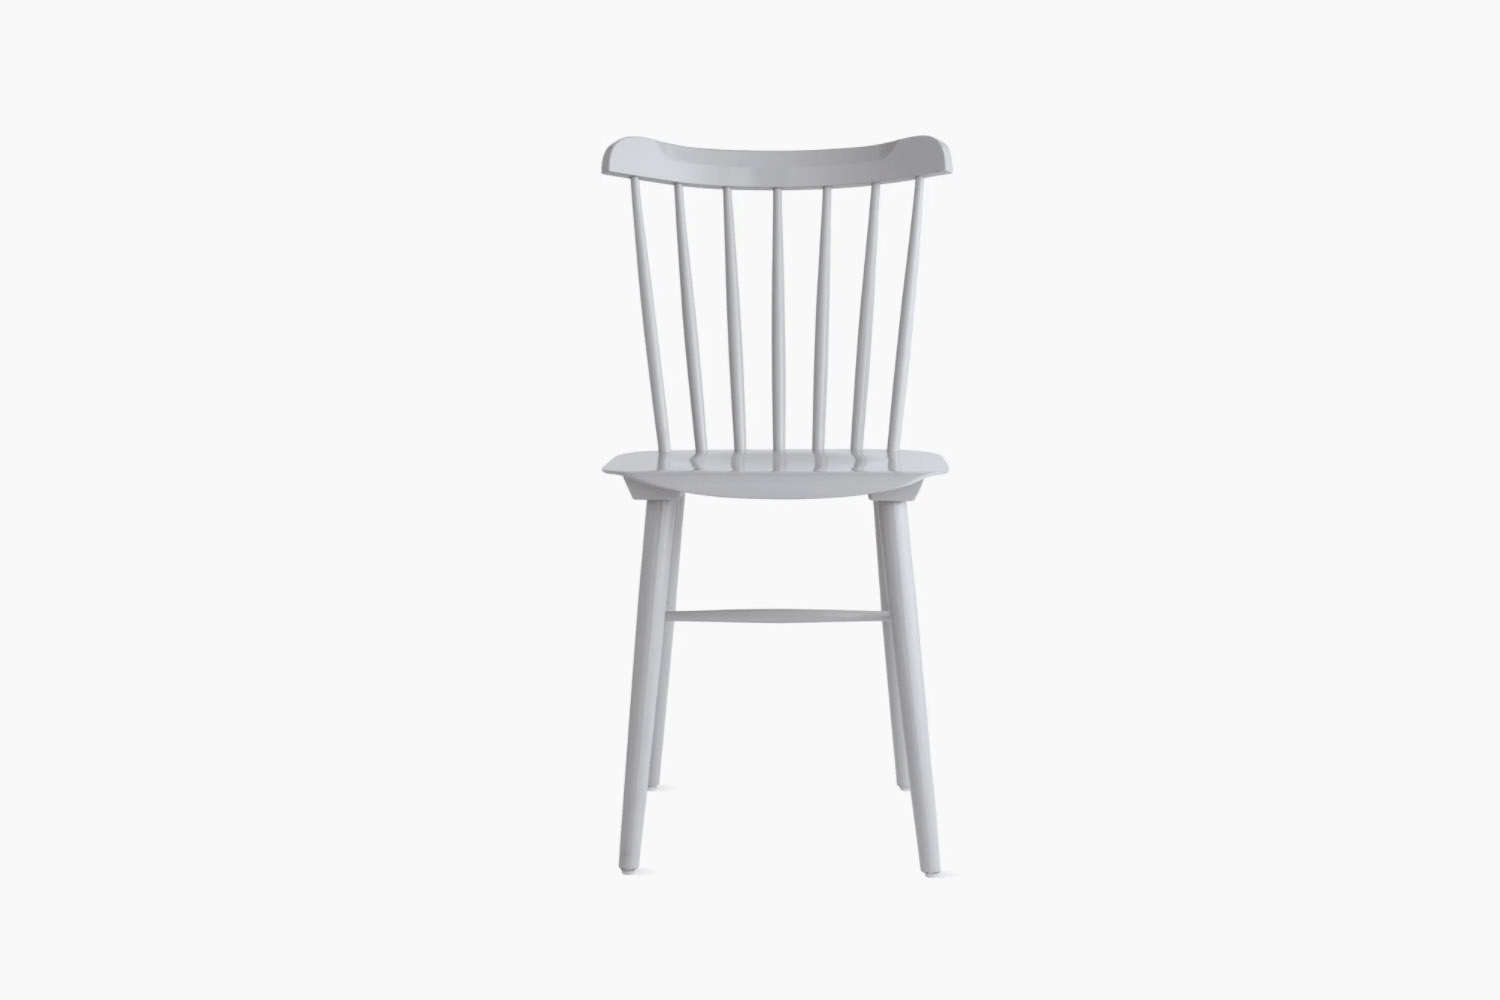 The Design Within Reach Salt Chair is $5.